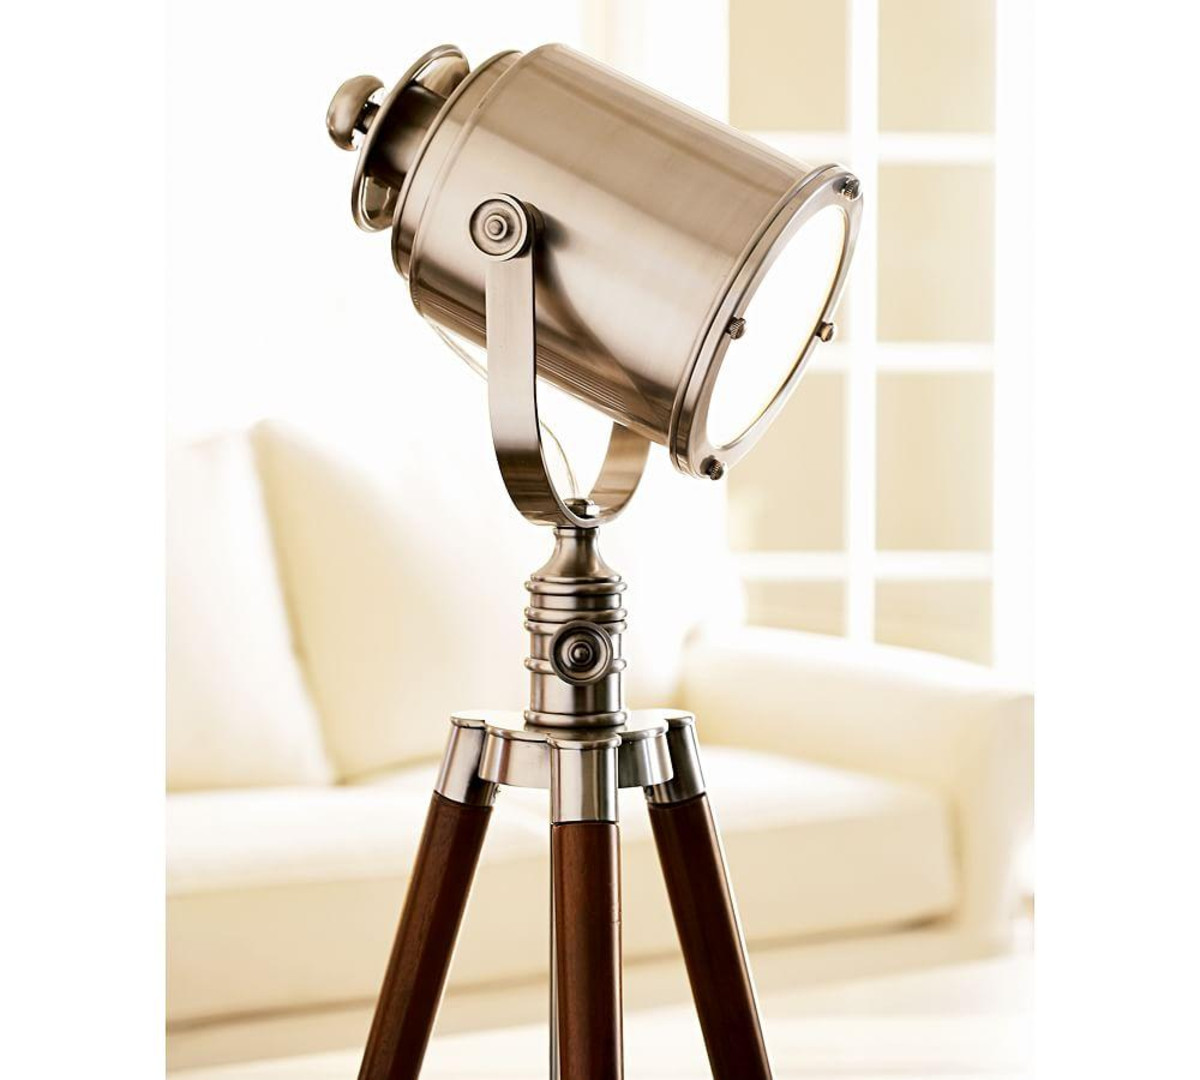 Tripod Lamp Base | Tripod Lamp | Floor Lamp with Storage